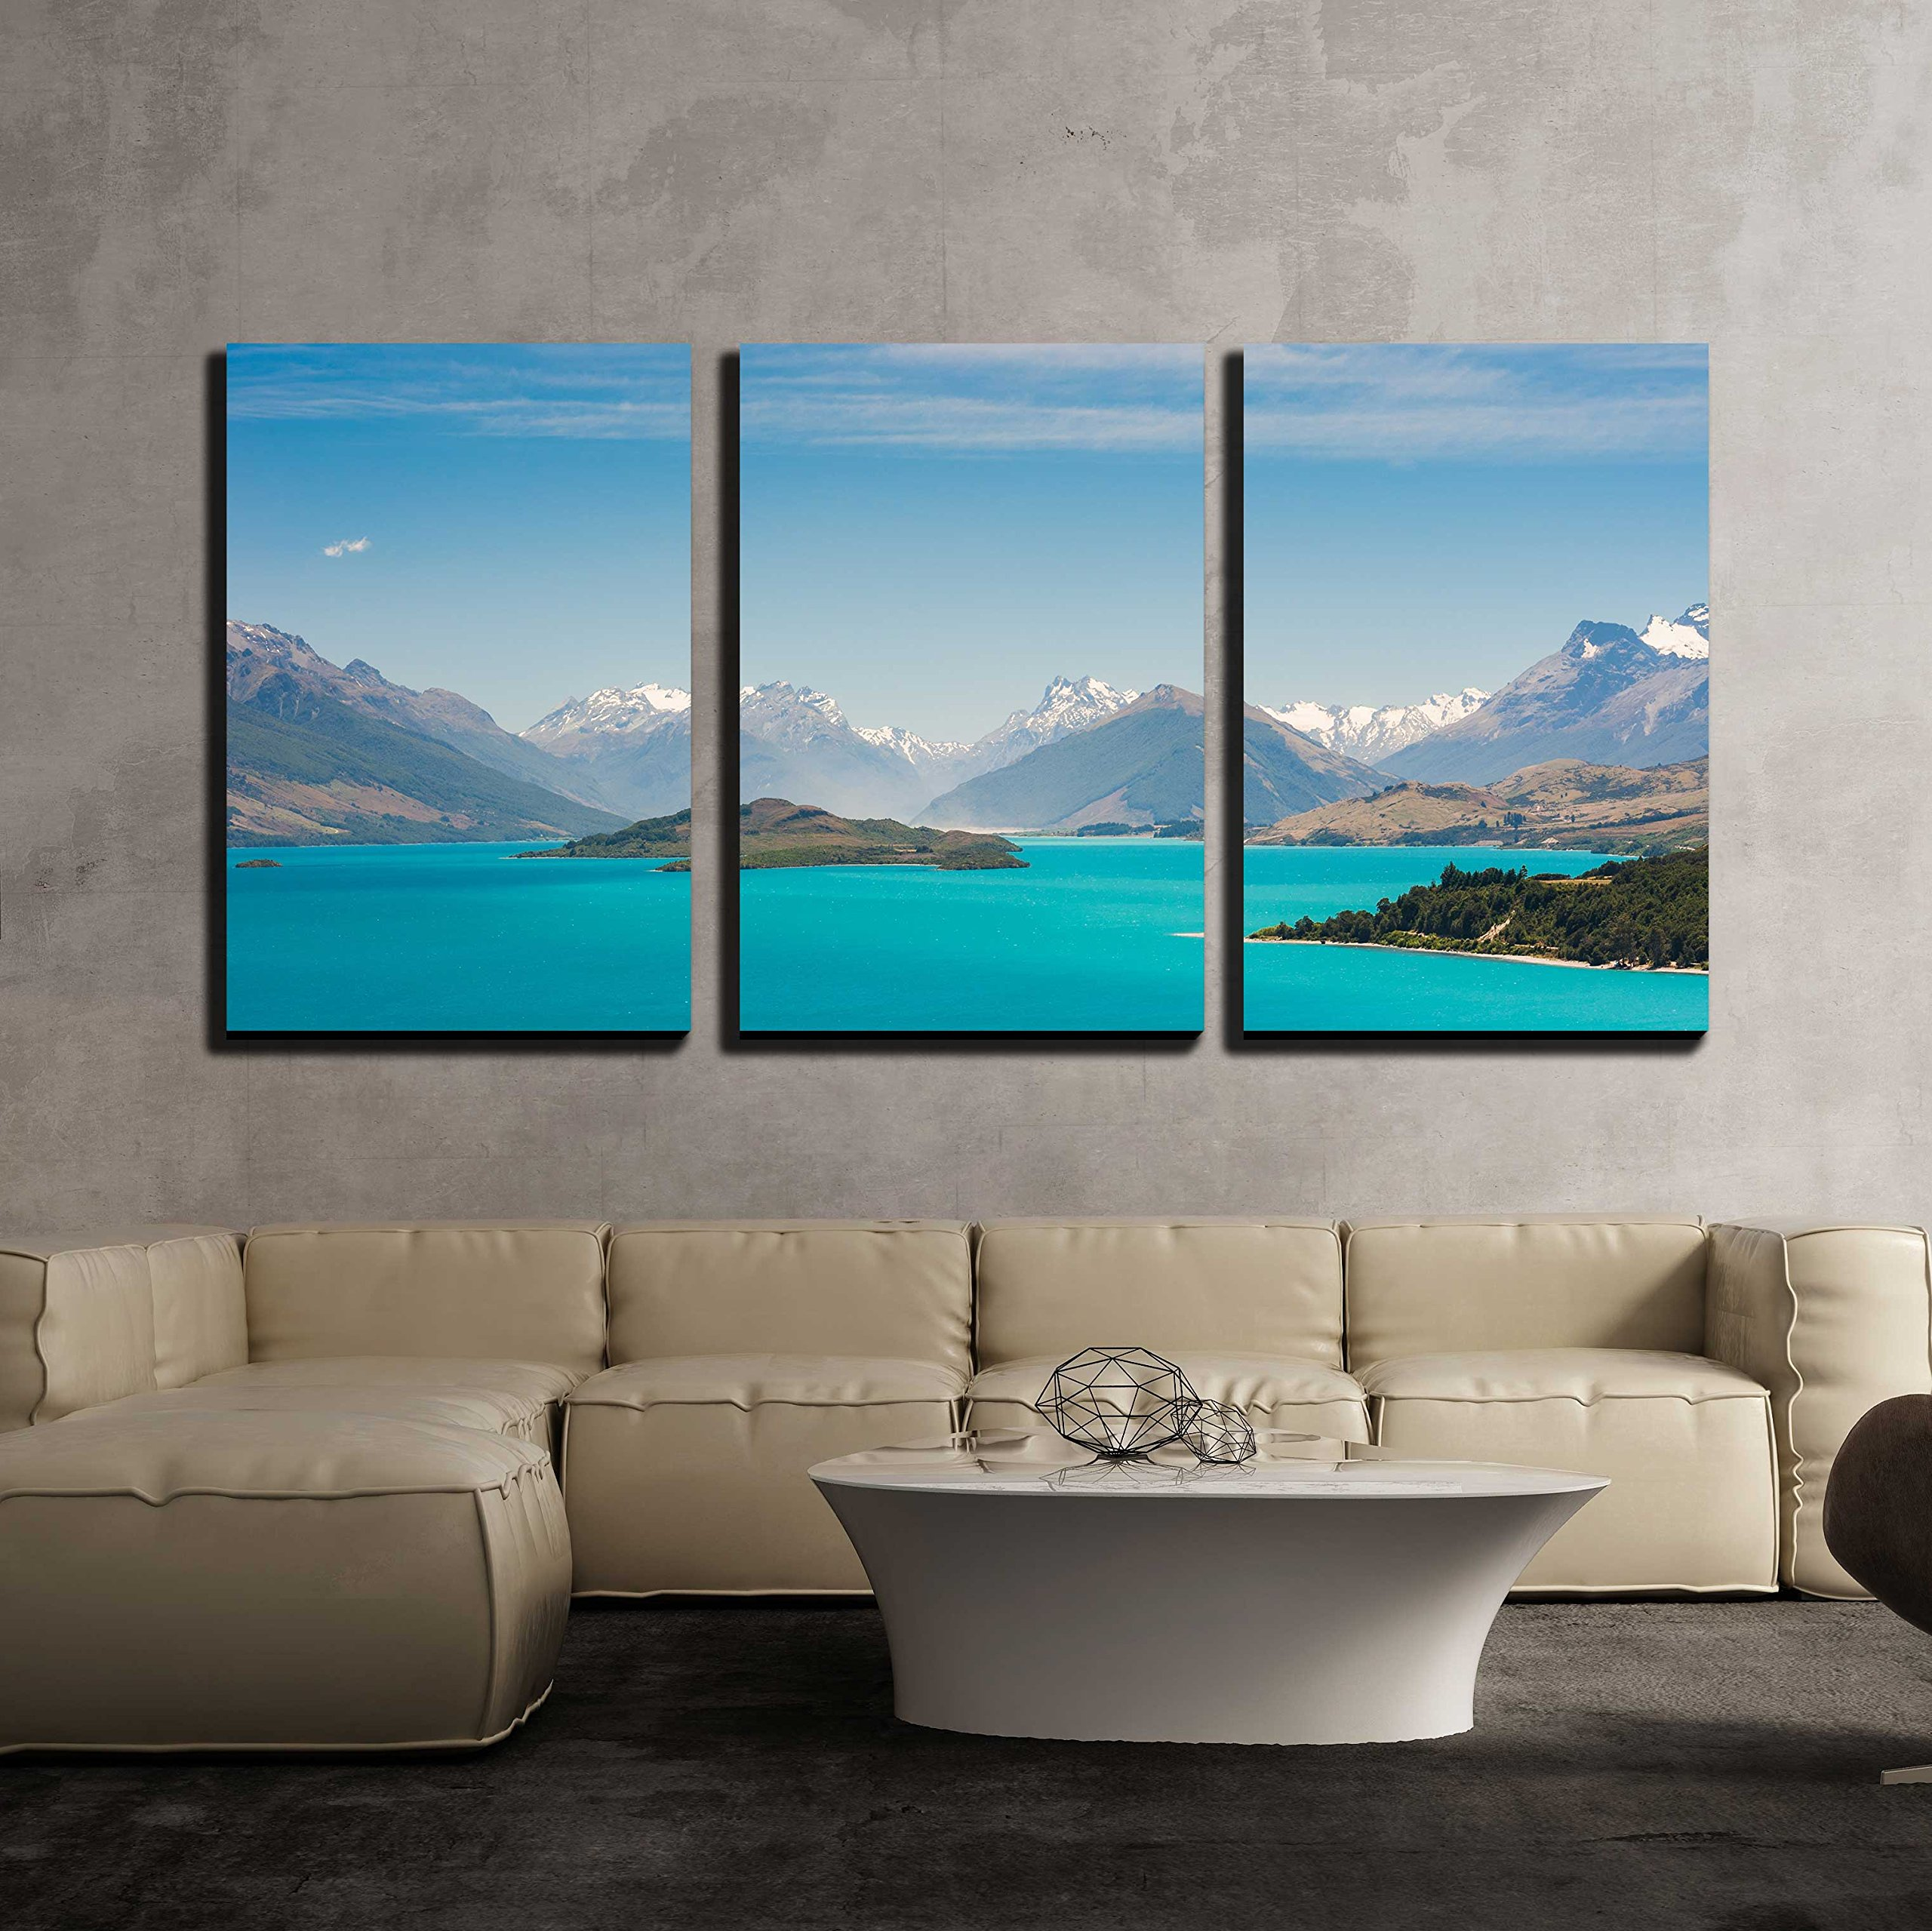 """wall26 - 3 Piece Canvas Wall Art - Beautiful Wakatiup Lake, New Zealand - Modern Home Art Stretched and Framed Ready to Hang - 16""""x24""""x3 Panels"""